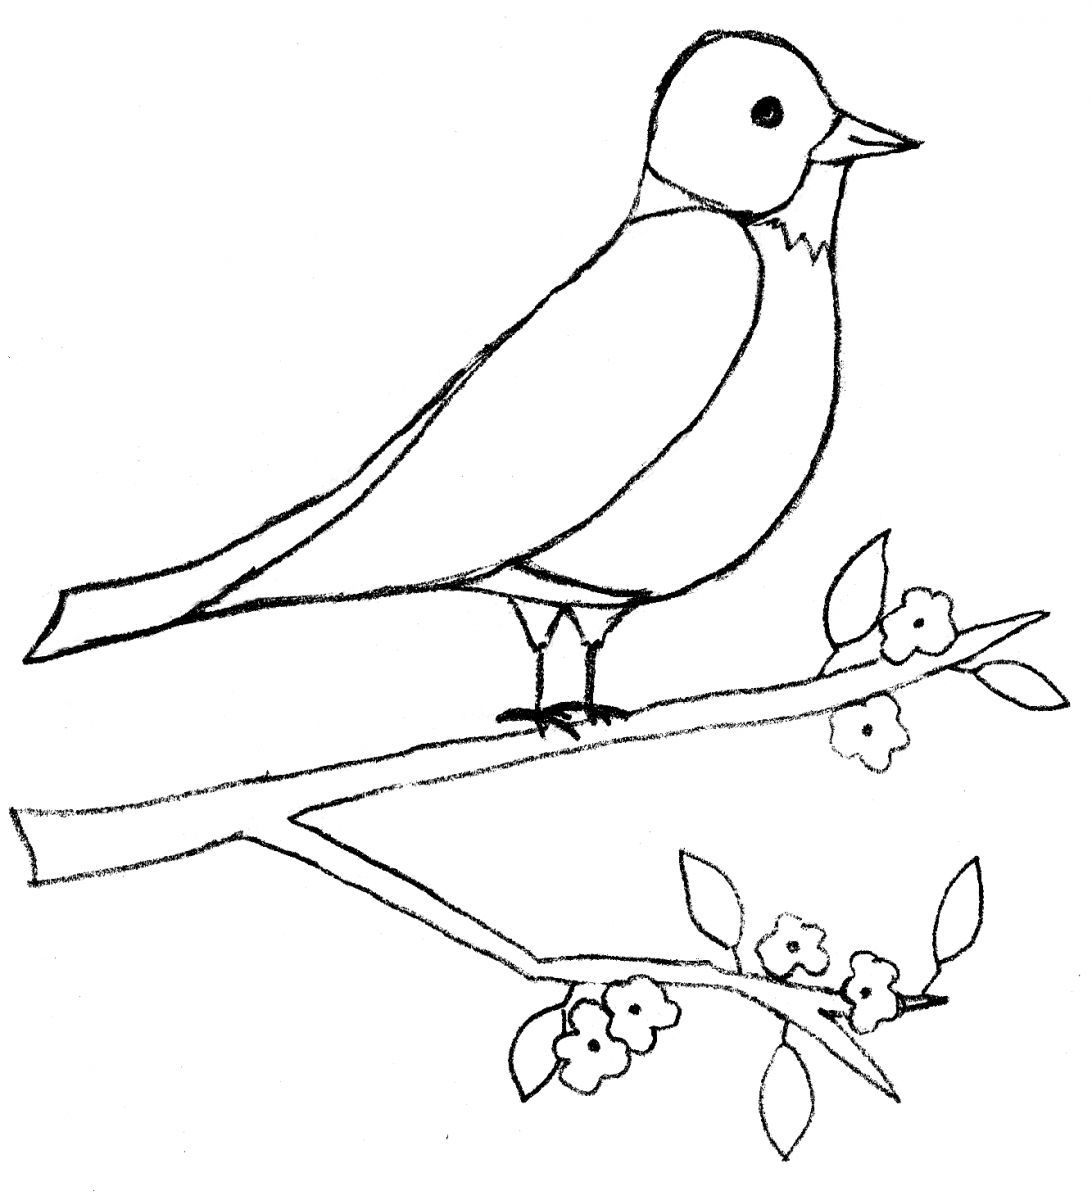 Bird Drawing Images at GetDrawings.com | Free for personal use Bird ...